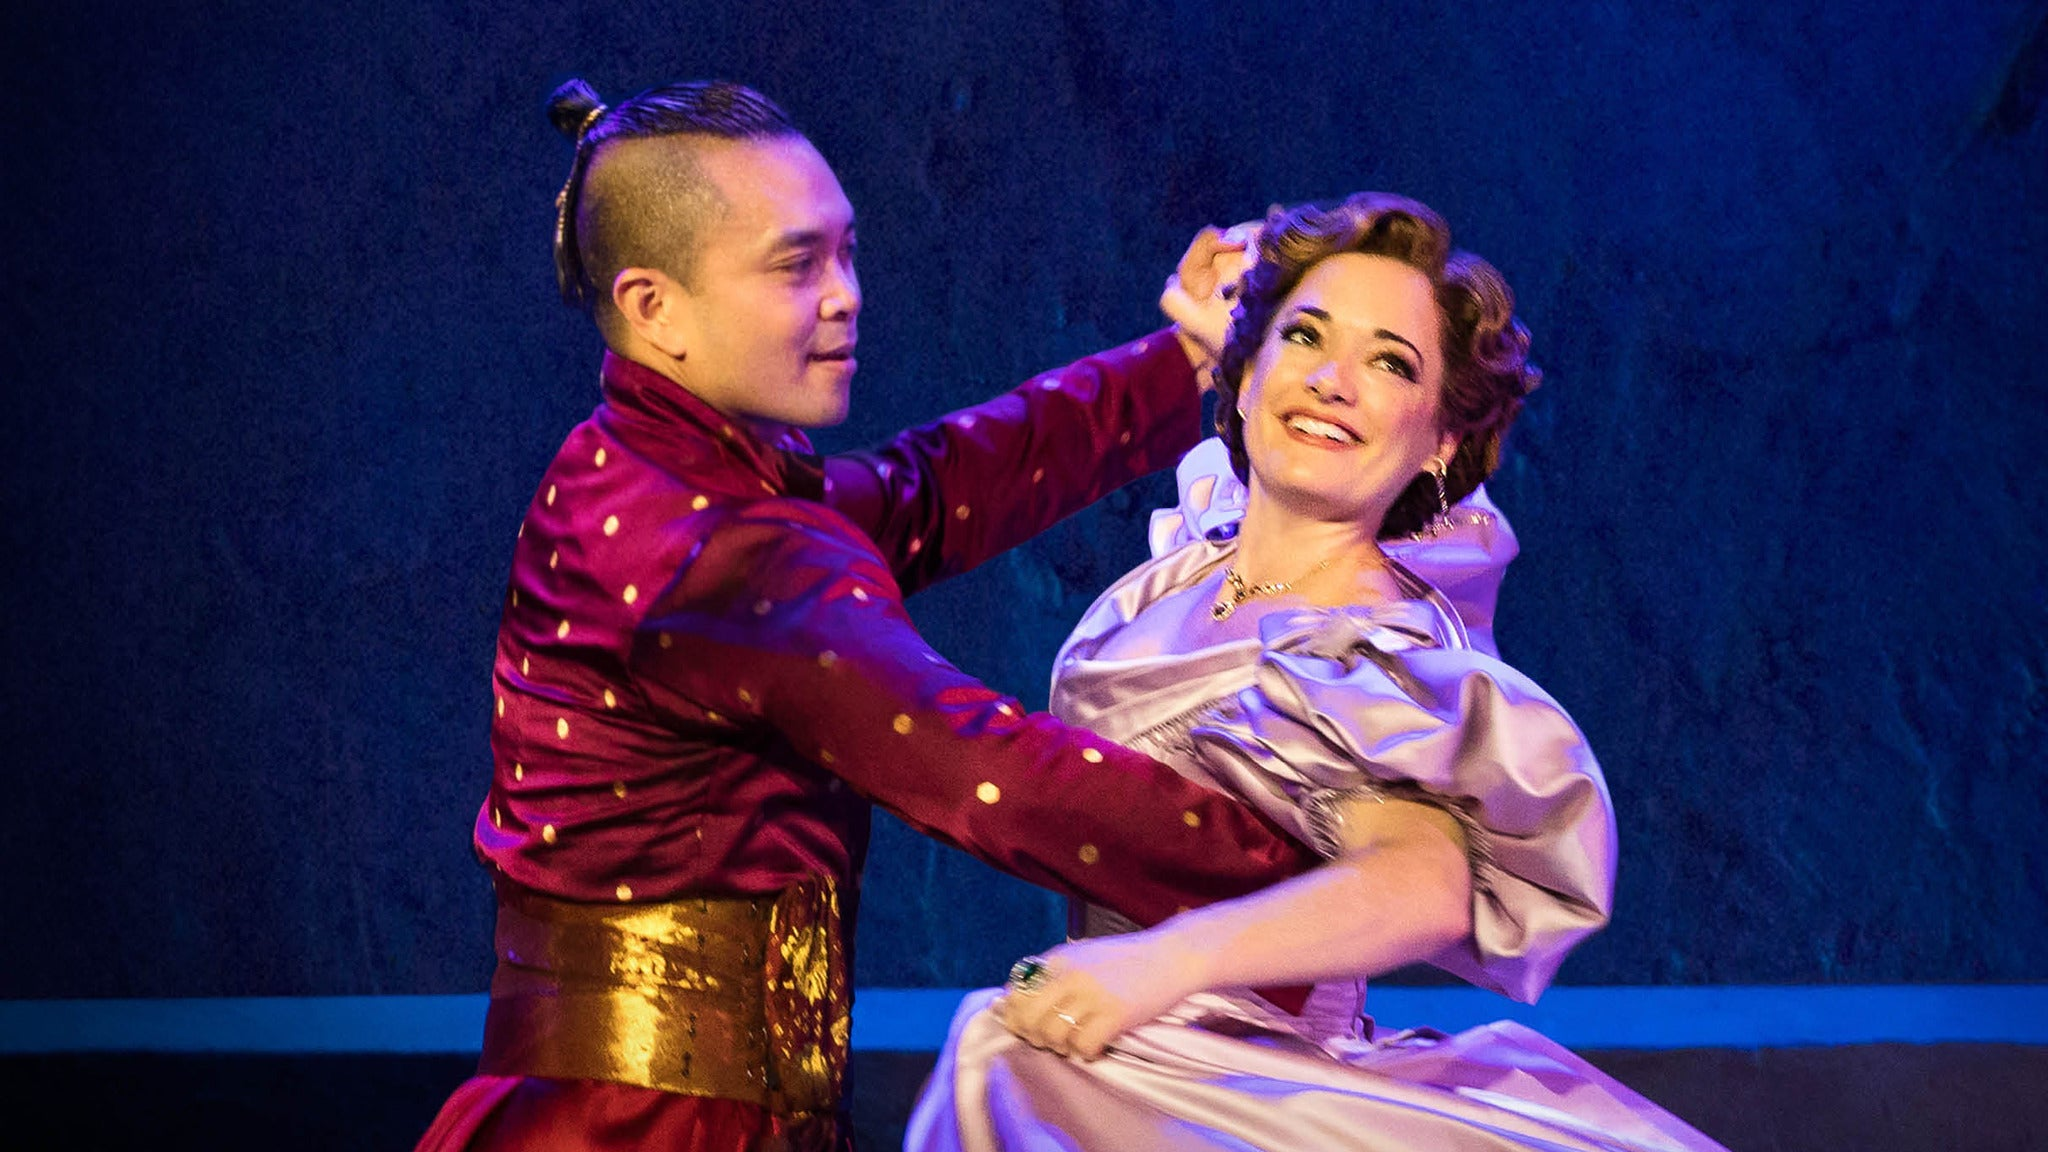 The King And I at Kravis Center - Dreyfoos Hall